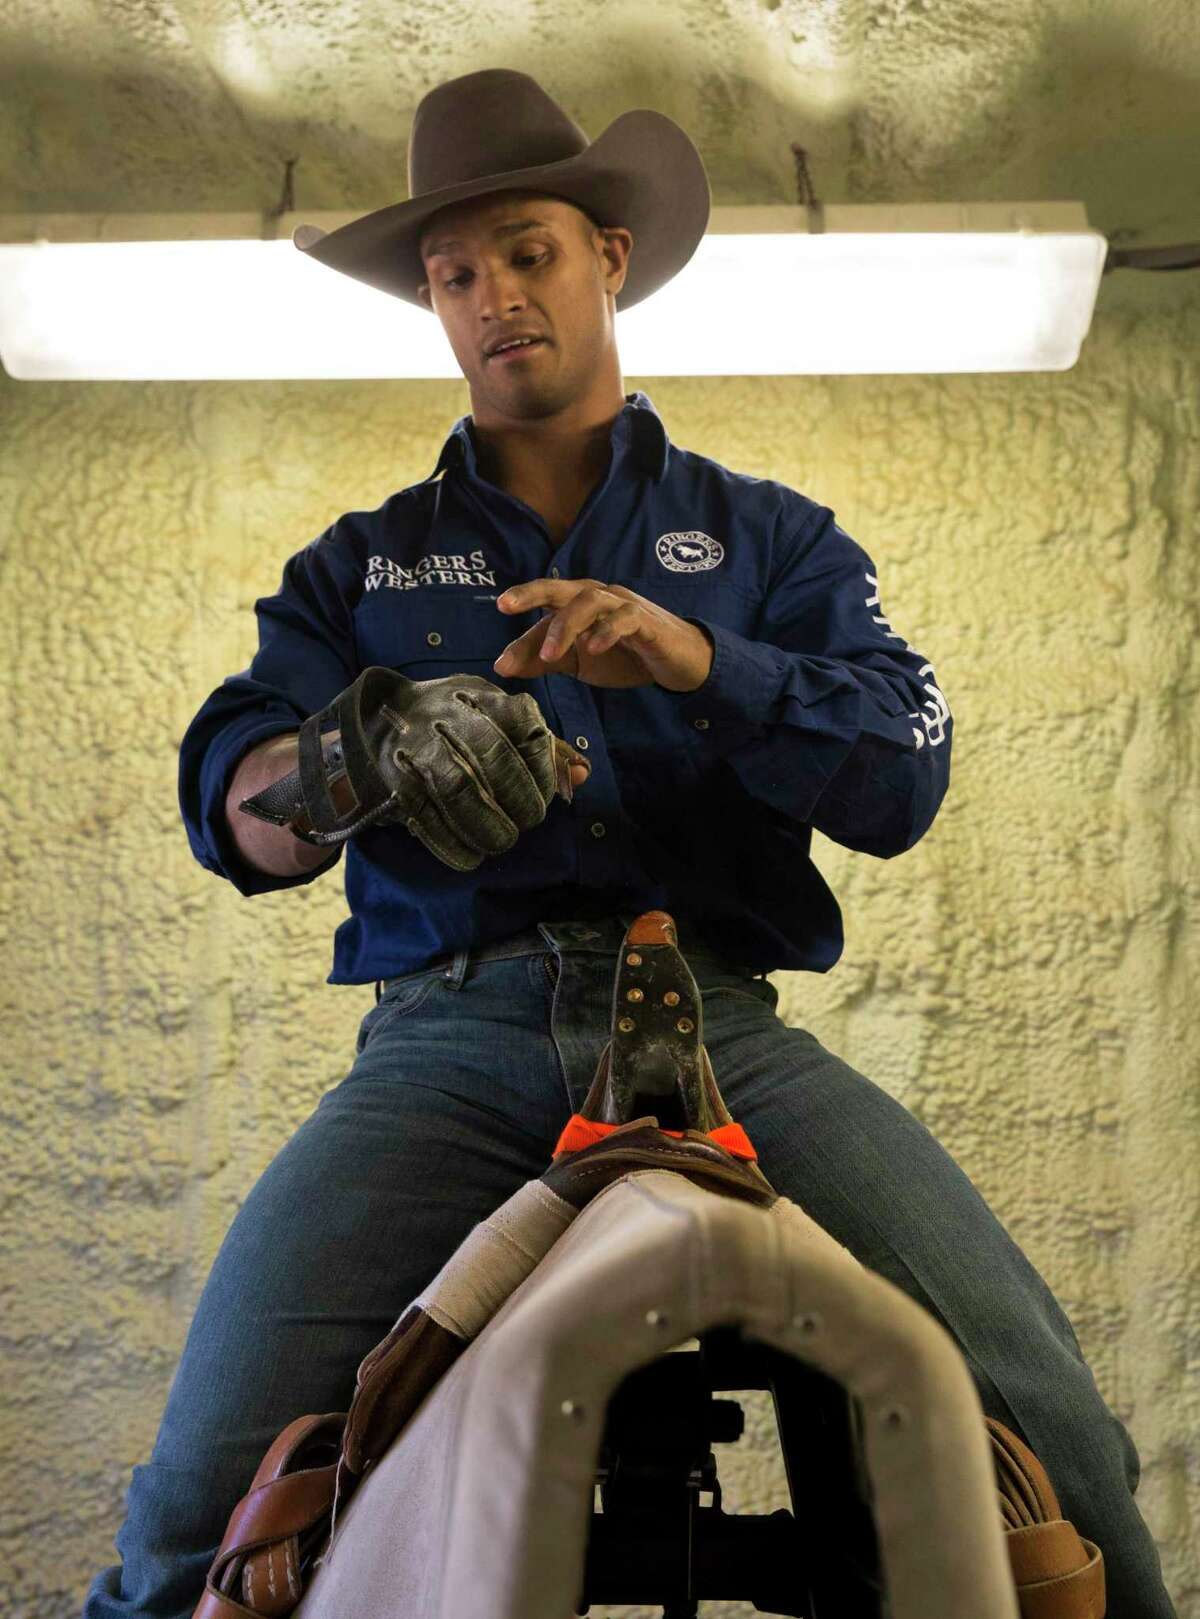 Bareback rider Anthony Thomas, an Australian native, practices with a bucking machine Thursday, Feb. 27, 2020, at Humble Hairpin Ranch in Humble. Thomas had go to rehab at Memorial Hermann Ironman Sports Medicine Institute to heal torn ligaments in his arm from years of bareback riding.